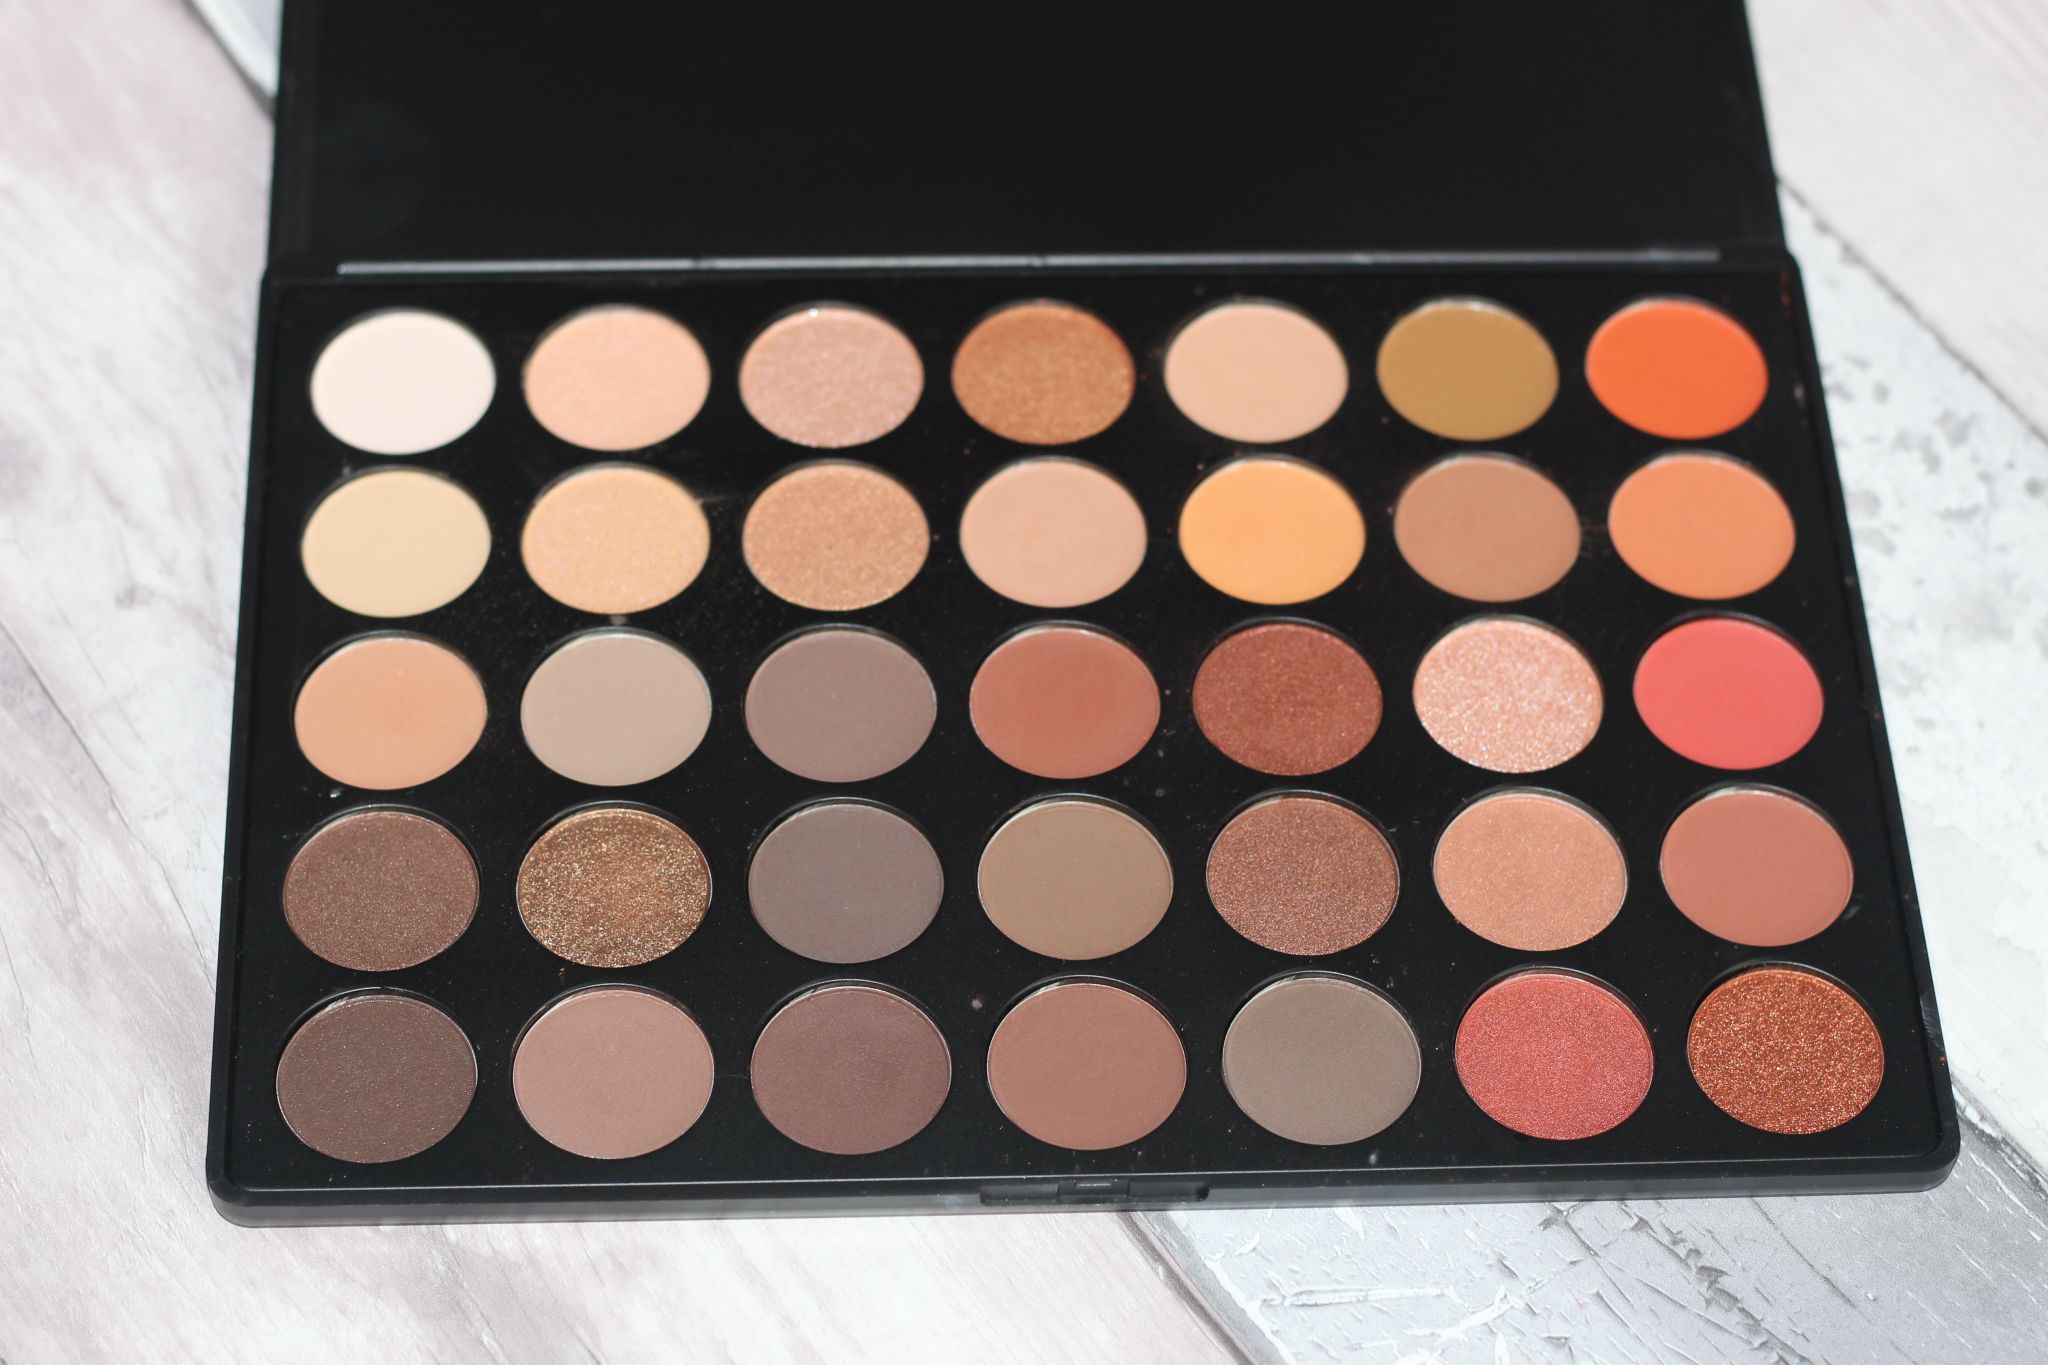 Morphe 350 Eyeshadow Palette Review & Swatches www